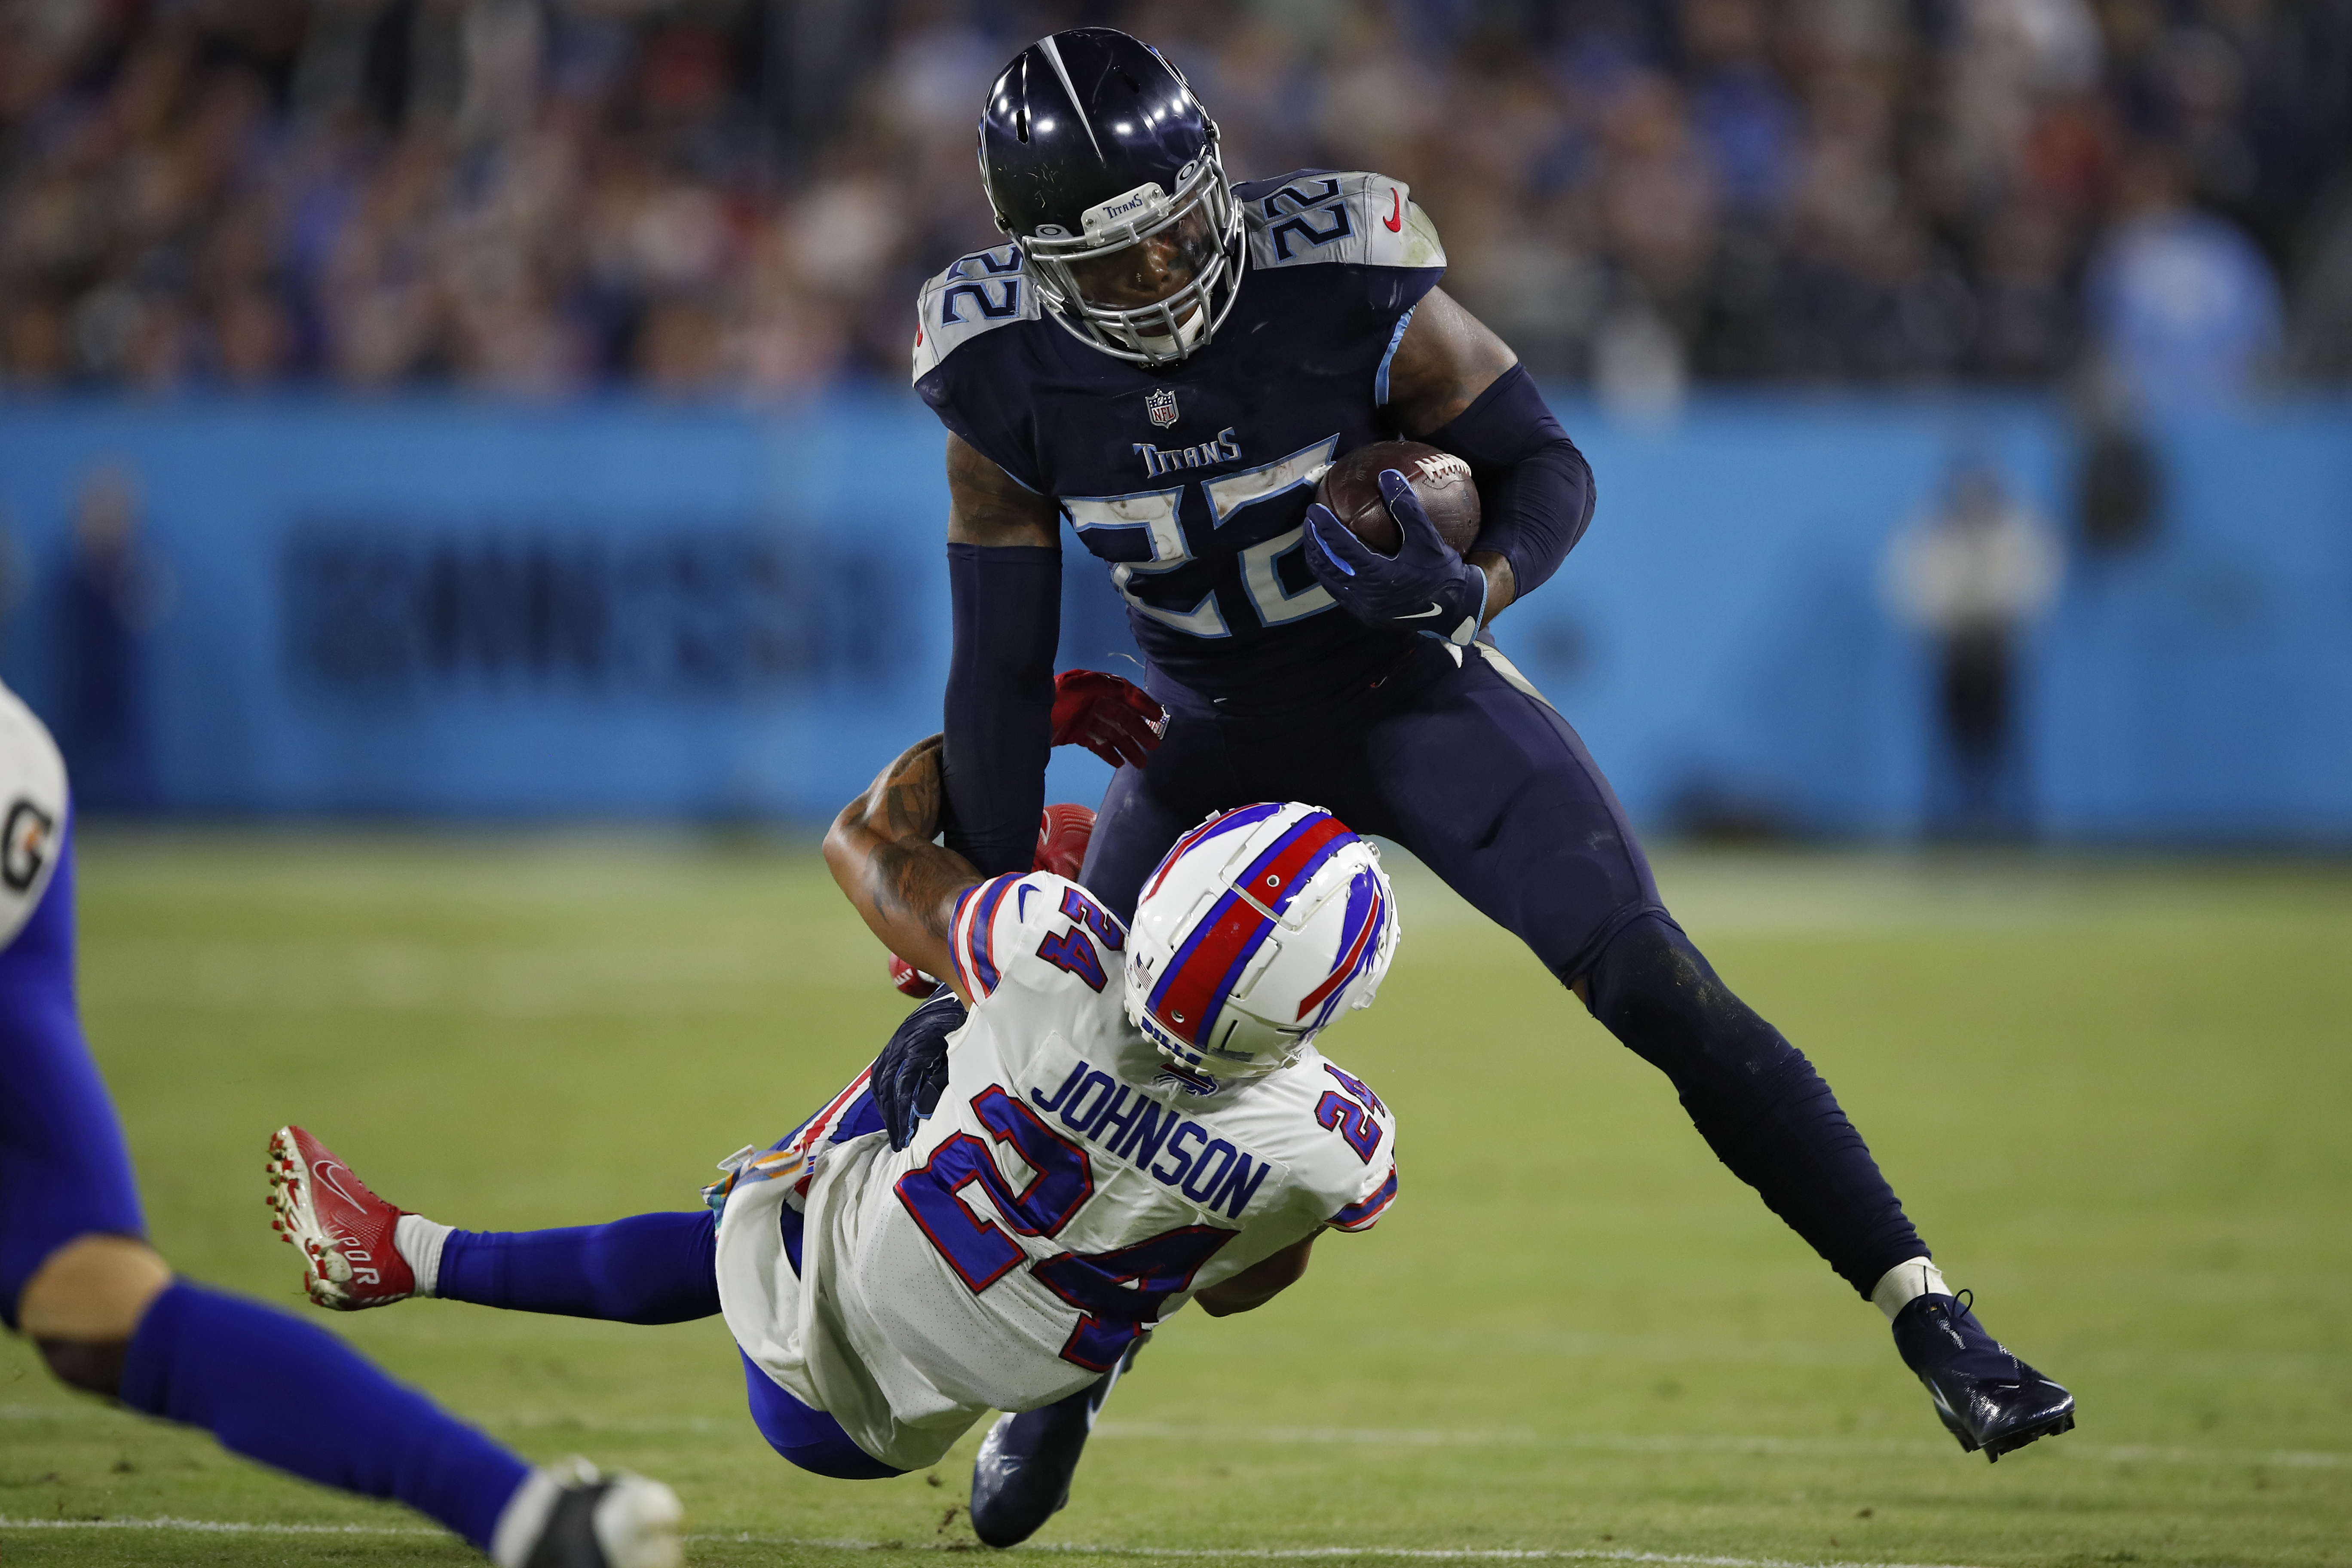 Running back Derrick Henry #22 of the Tennessee Titans rushes in front of cornerback Taron Johnson #24 of the Buffalo Bills during the second half at Nissan Stadium on October 18, 2021 in Nashville, Tennessee.